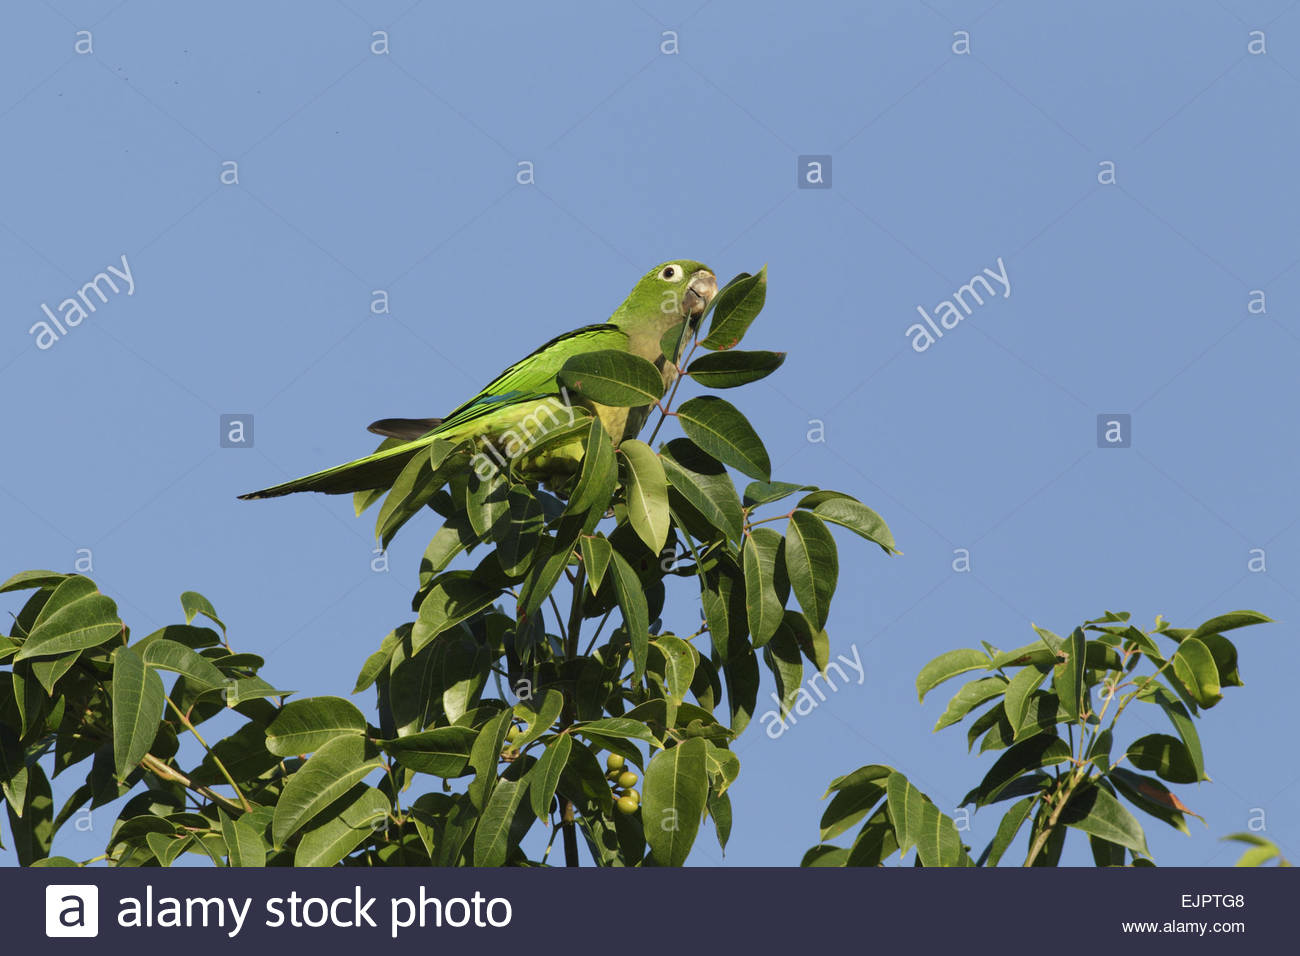 Images of Olive-Throated Parakeet | 1300x956